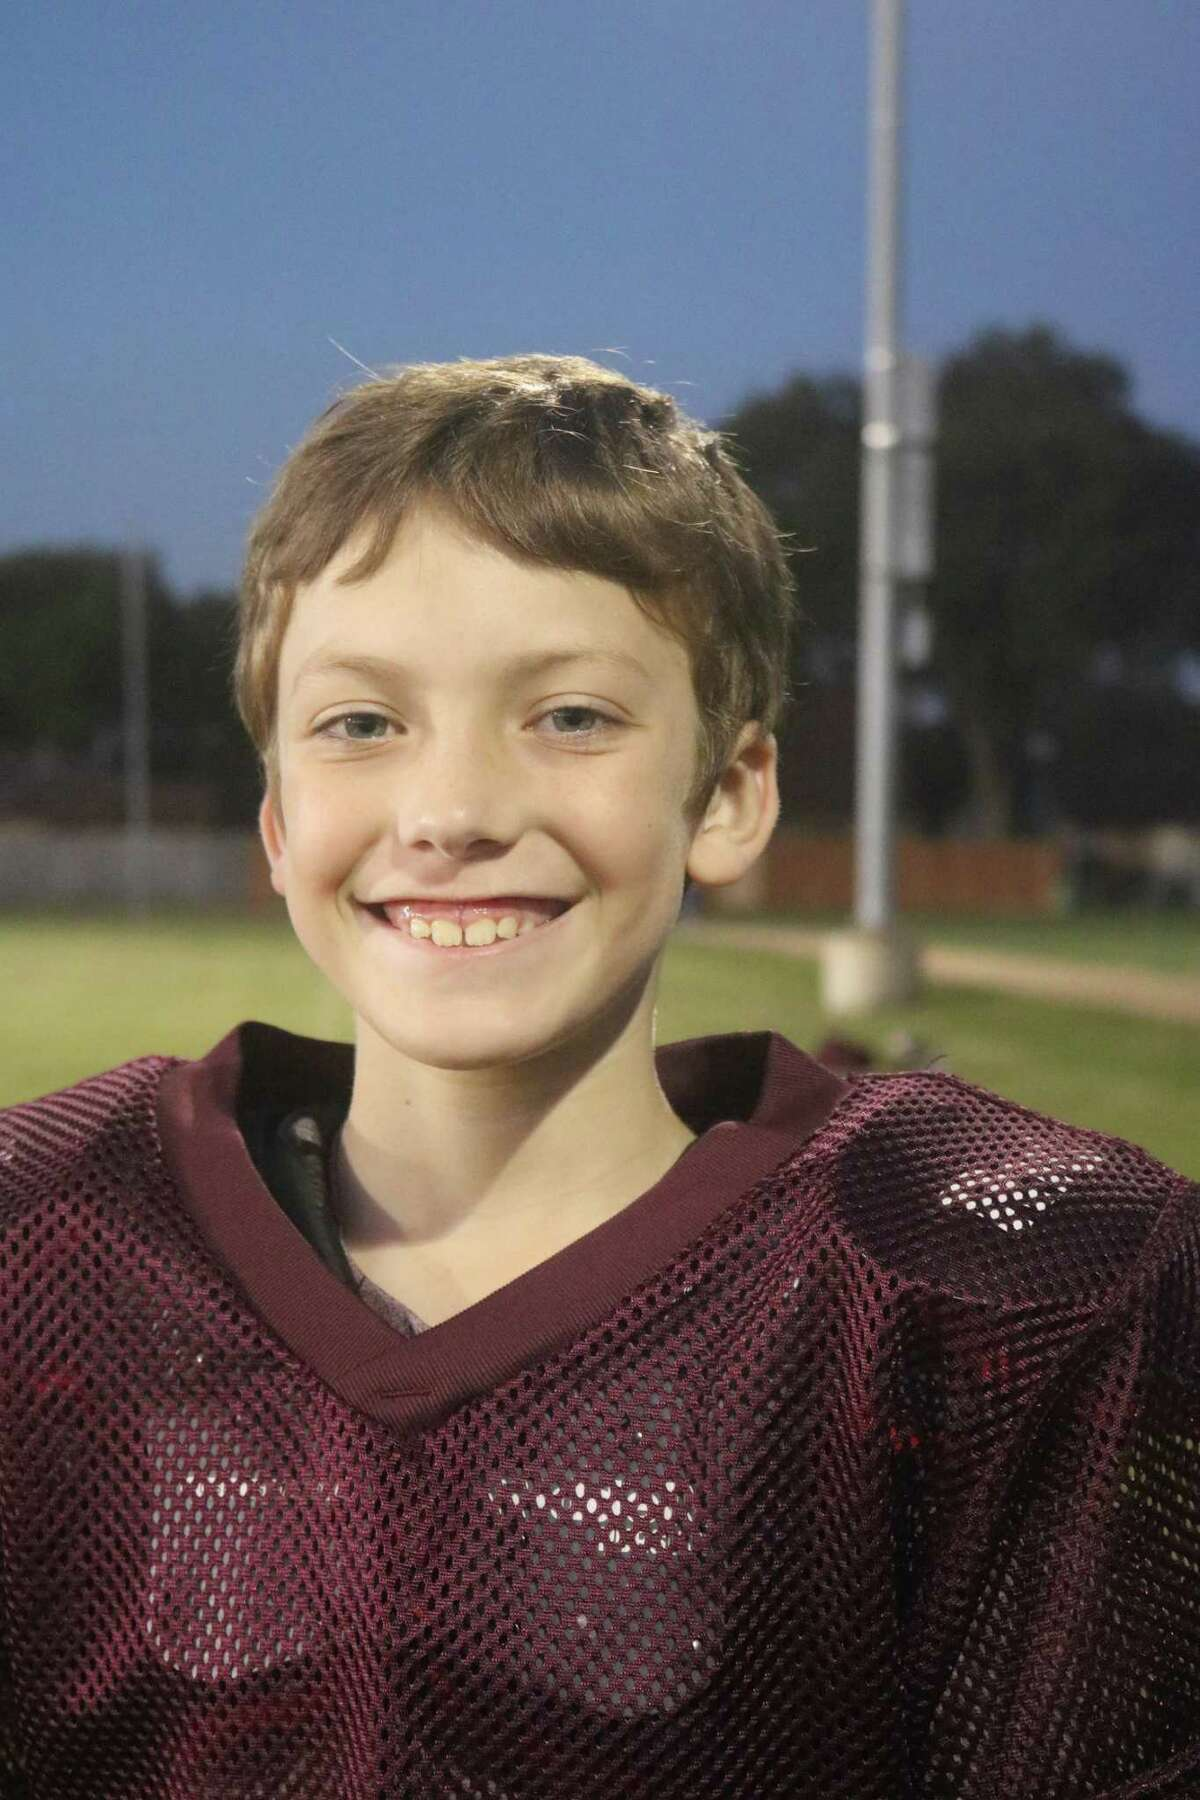 After three overtime games in the regular season, Seminoles Freshman player Ethan Mixon is a battle-tested young man as are his teammates. Nothing the playoffs throws at them should bother the boys.